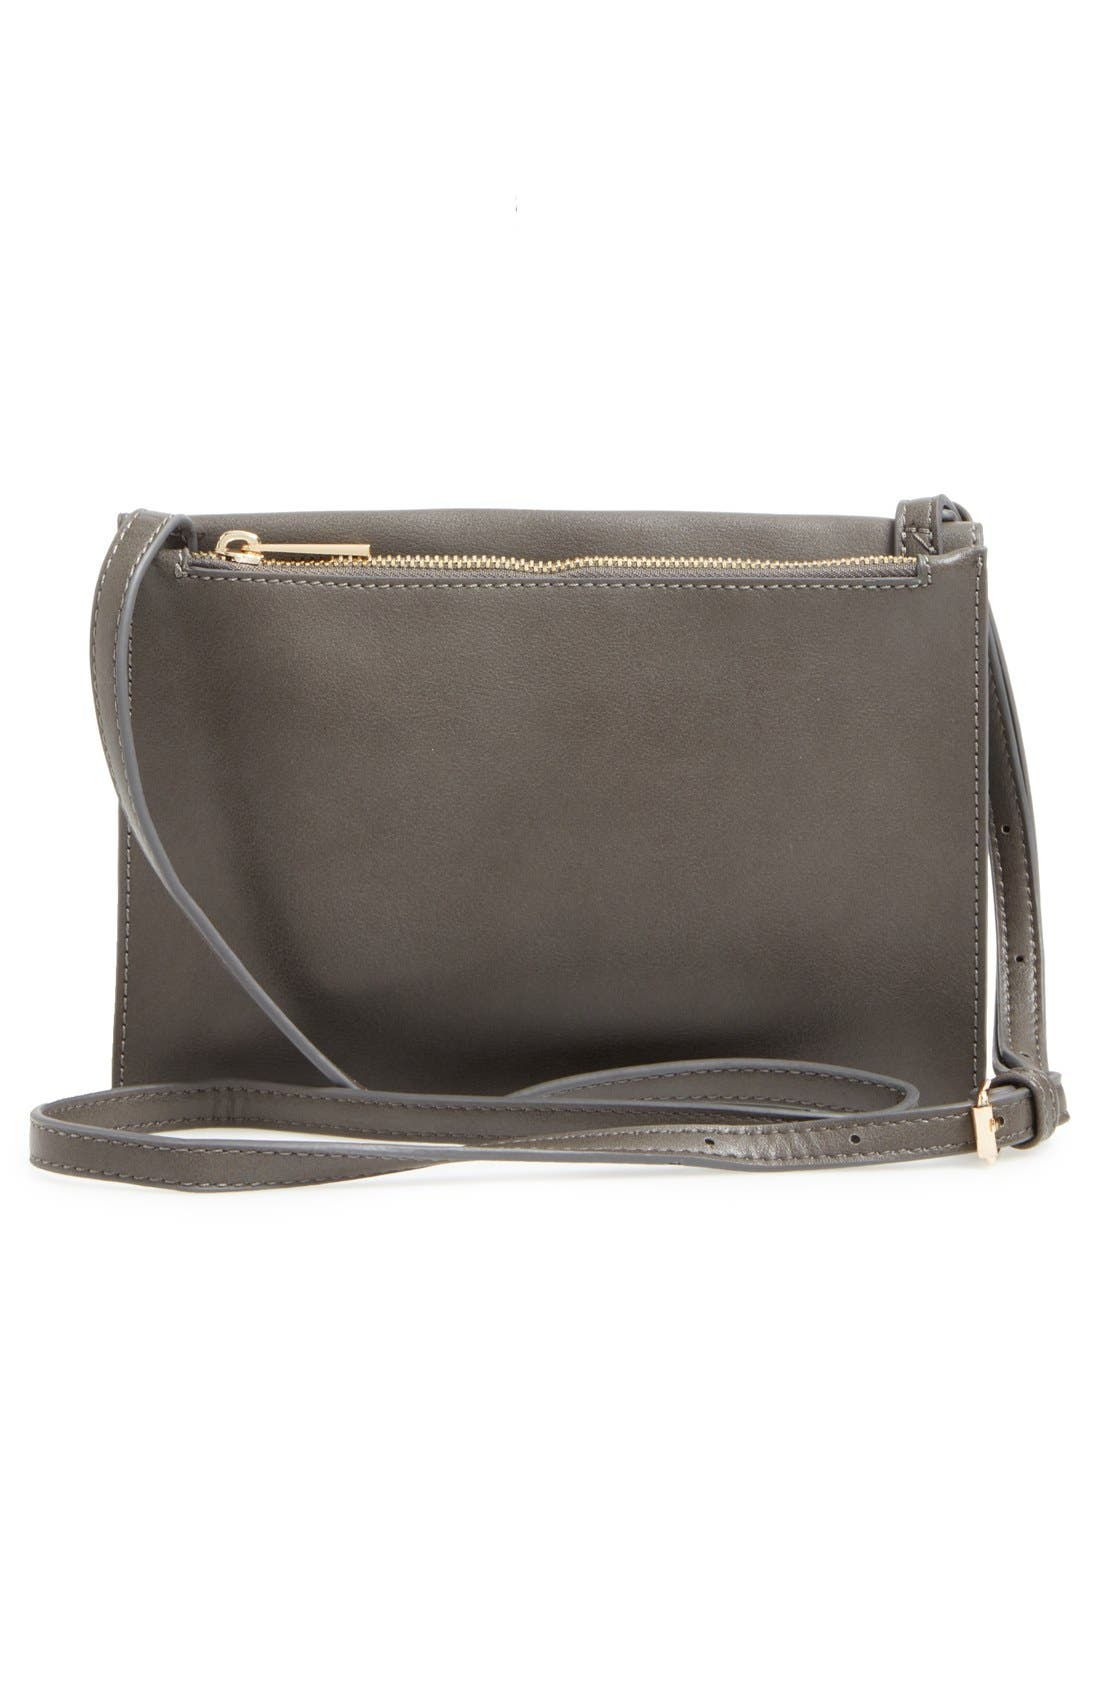 'Vanessa' Faux Leather Crossbody Bag,                             Alternate thumbnail 3, color,                             020